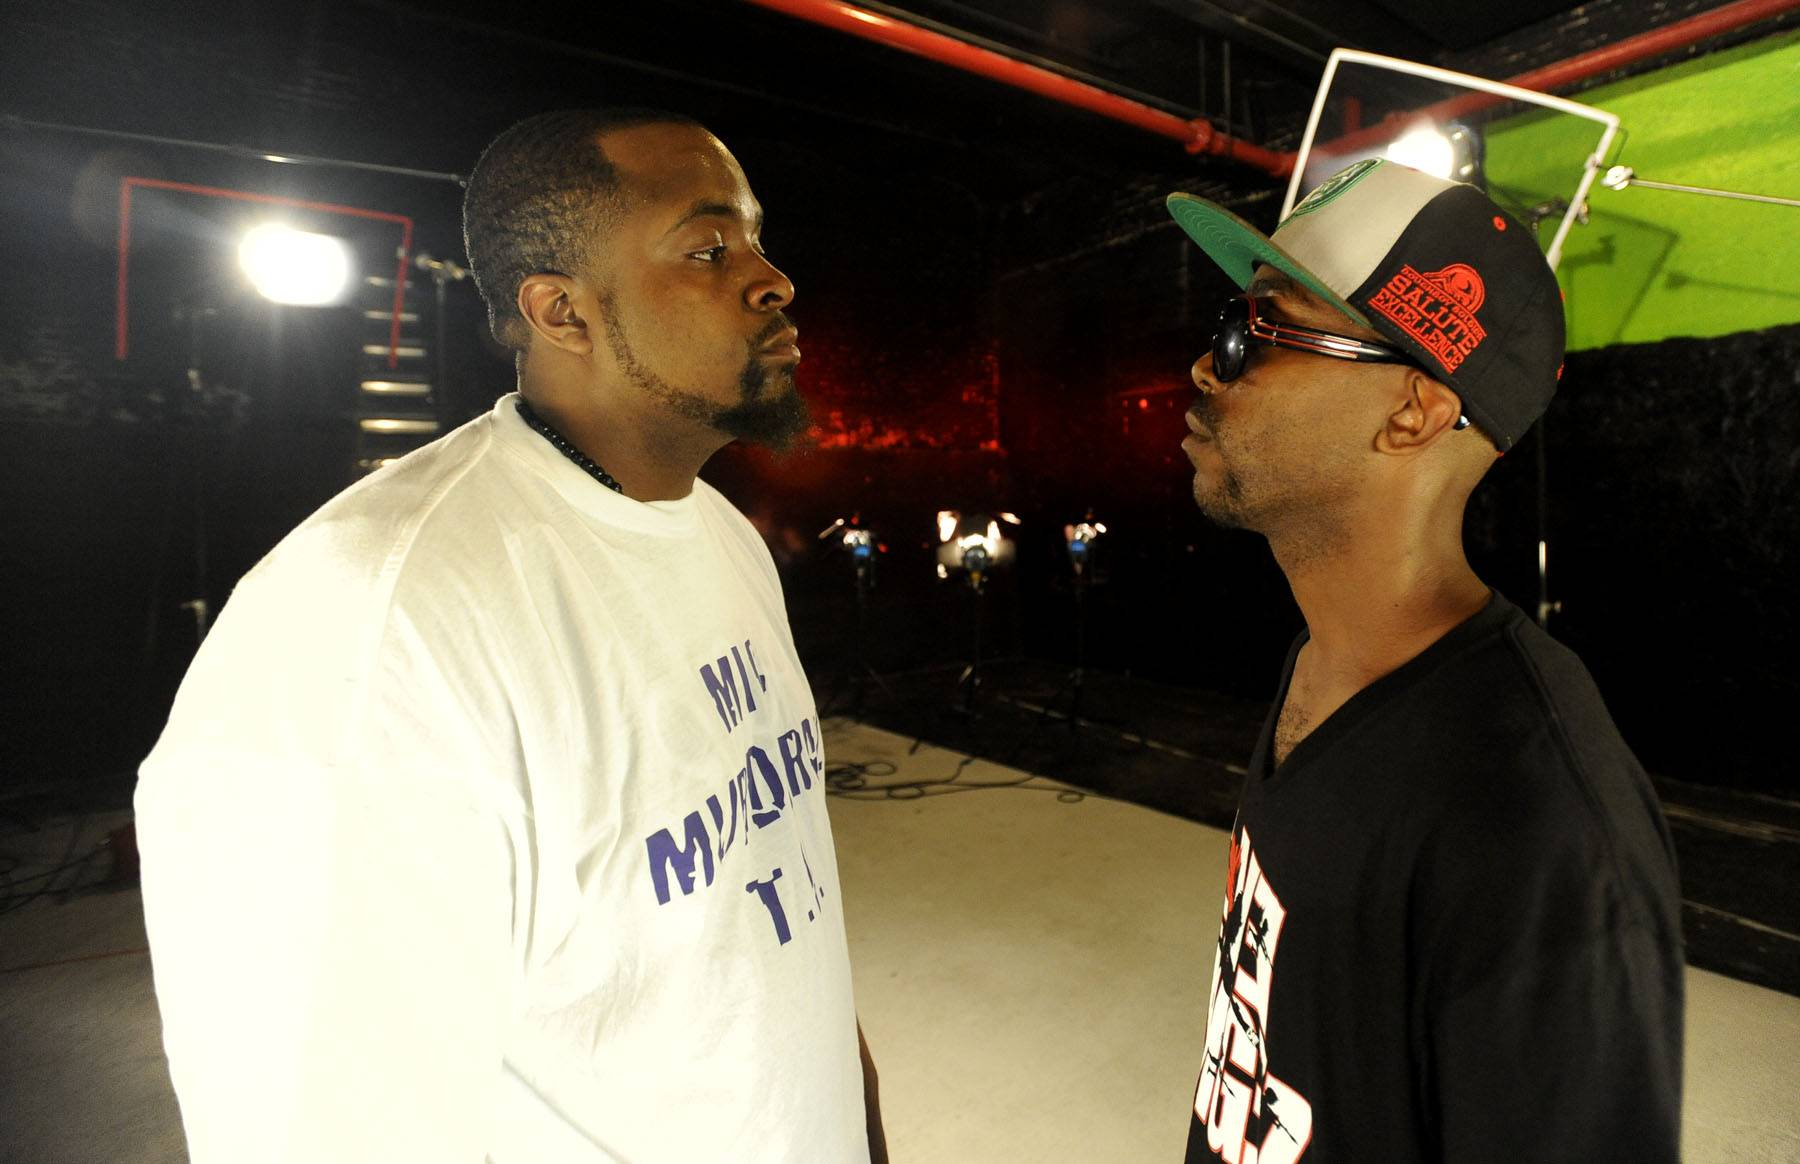 The Faceoff! - It's Ill Will versus Sco for the seventh and final Ultimate Freestyle Friday battle on 106. (Photo: John Ricard / BET)